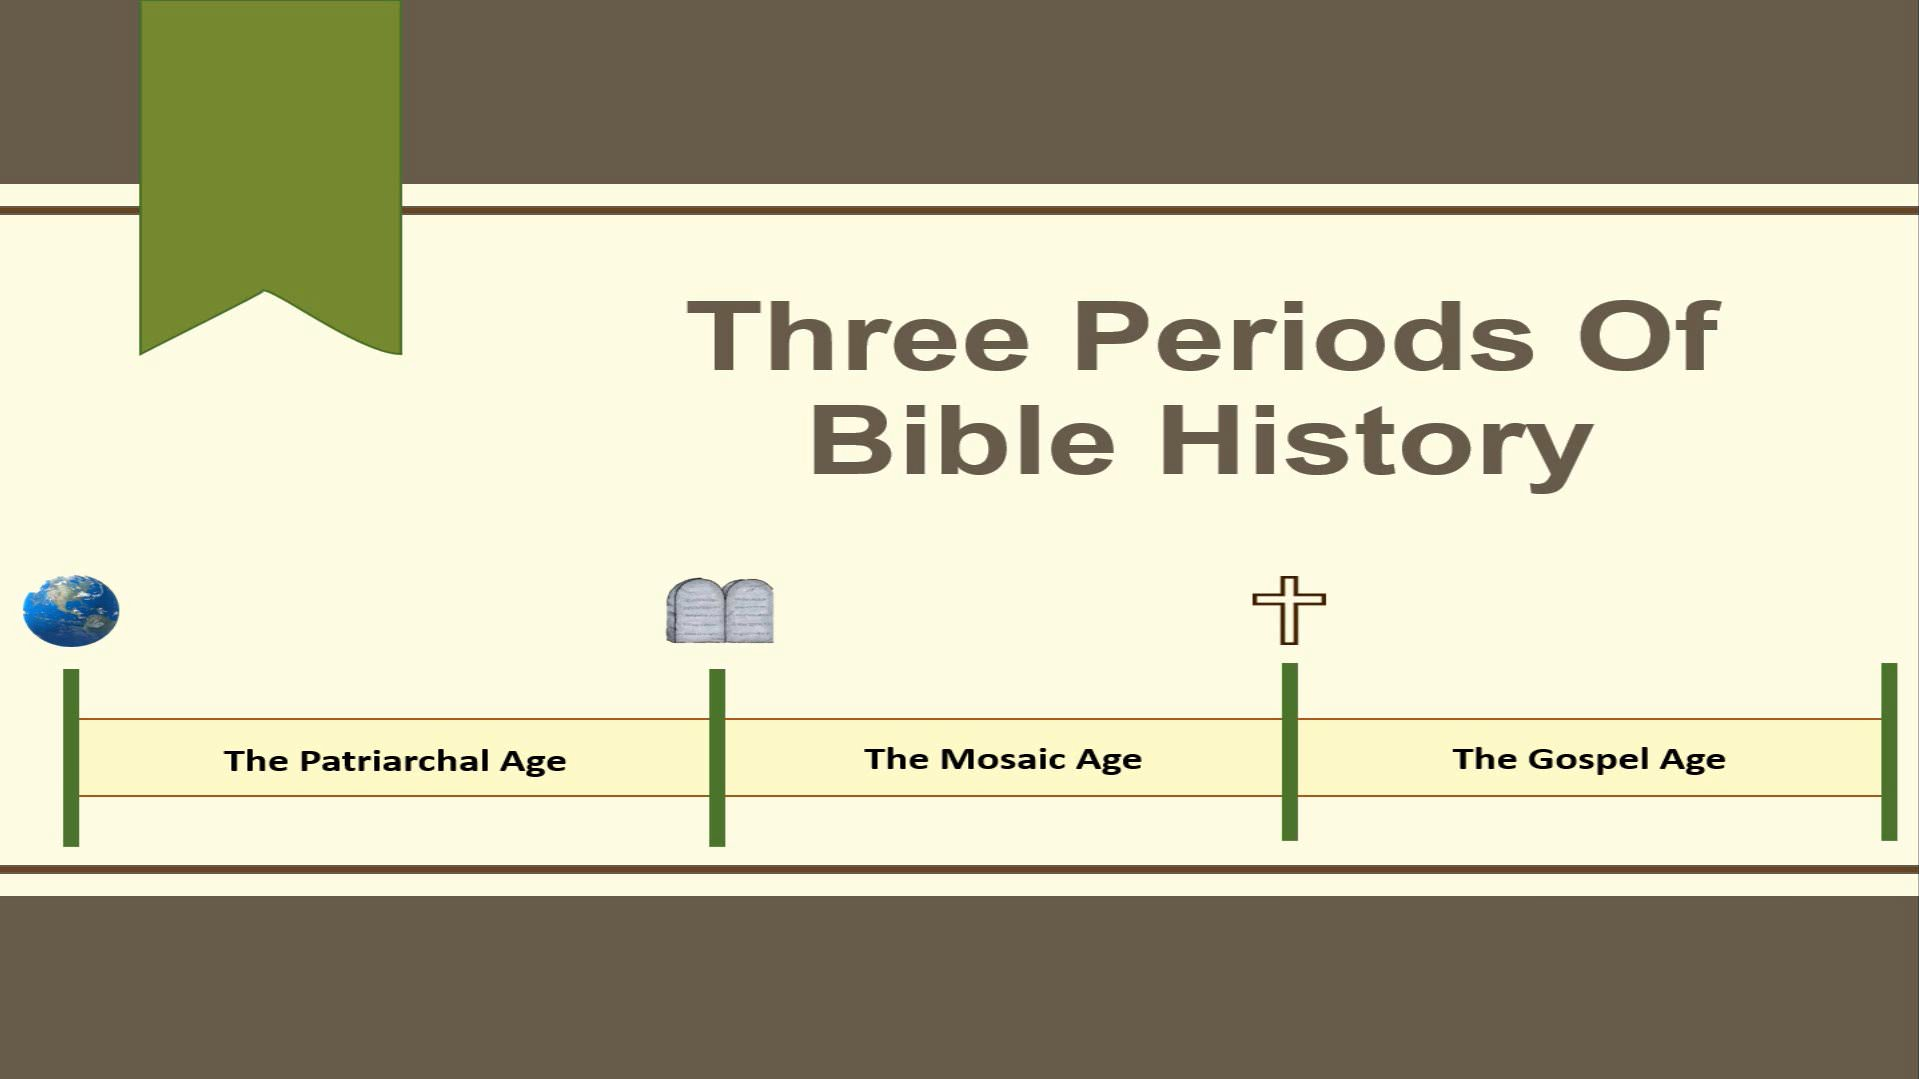 Three Periods Of Bible History